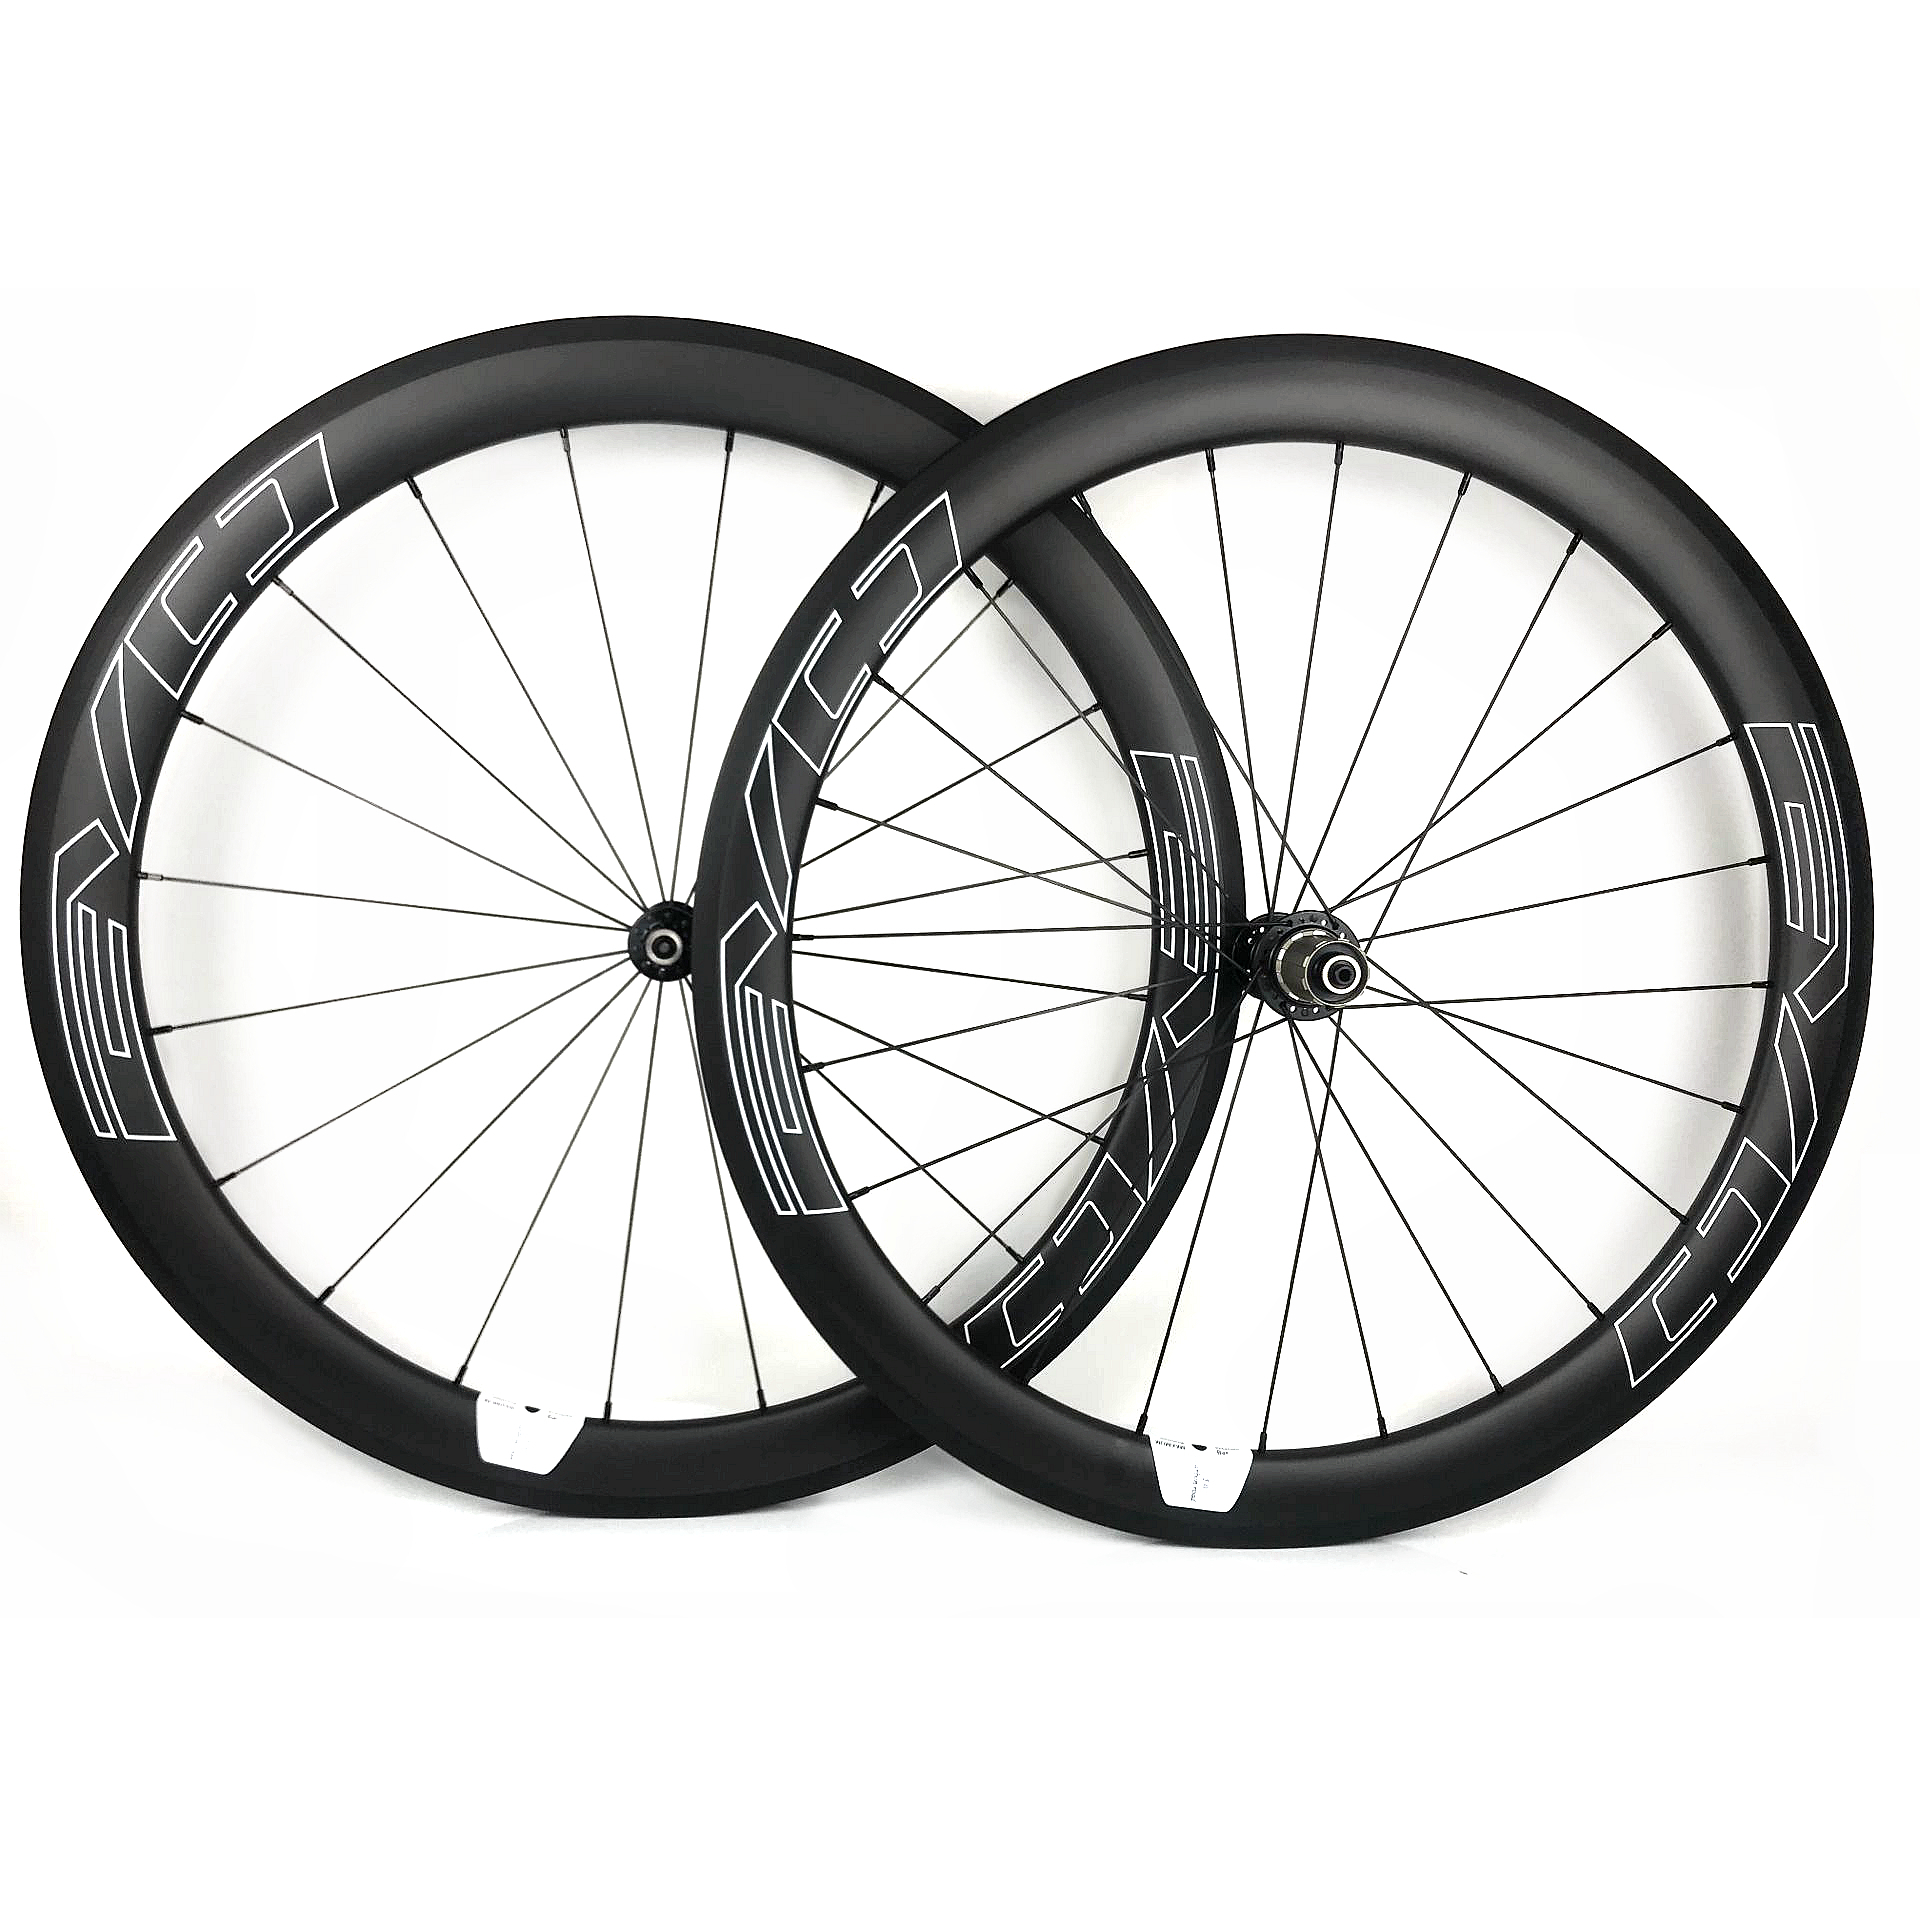 EVO 700C 50mm depth Road bike carbon wheels 25mm width clincher tubular bicycle super light aero